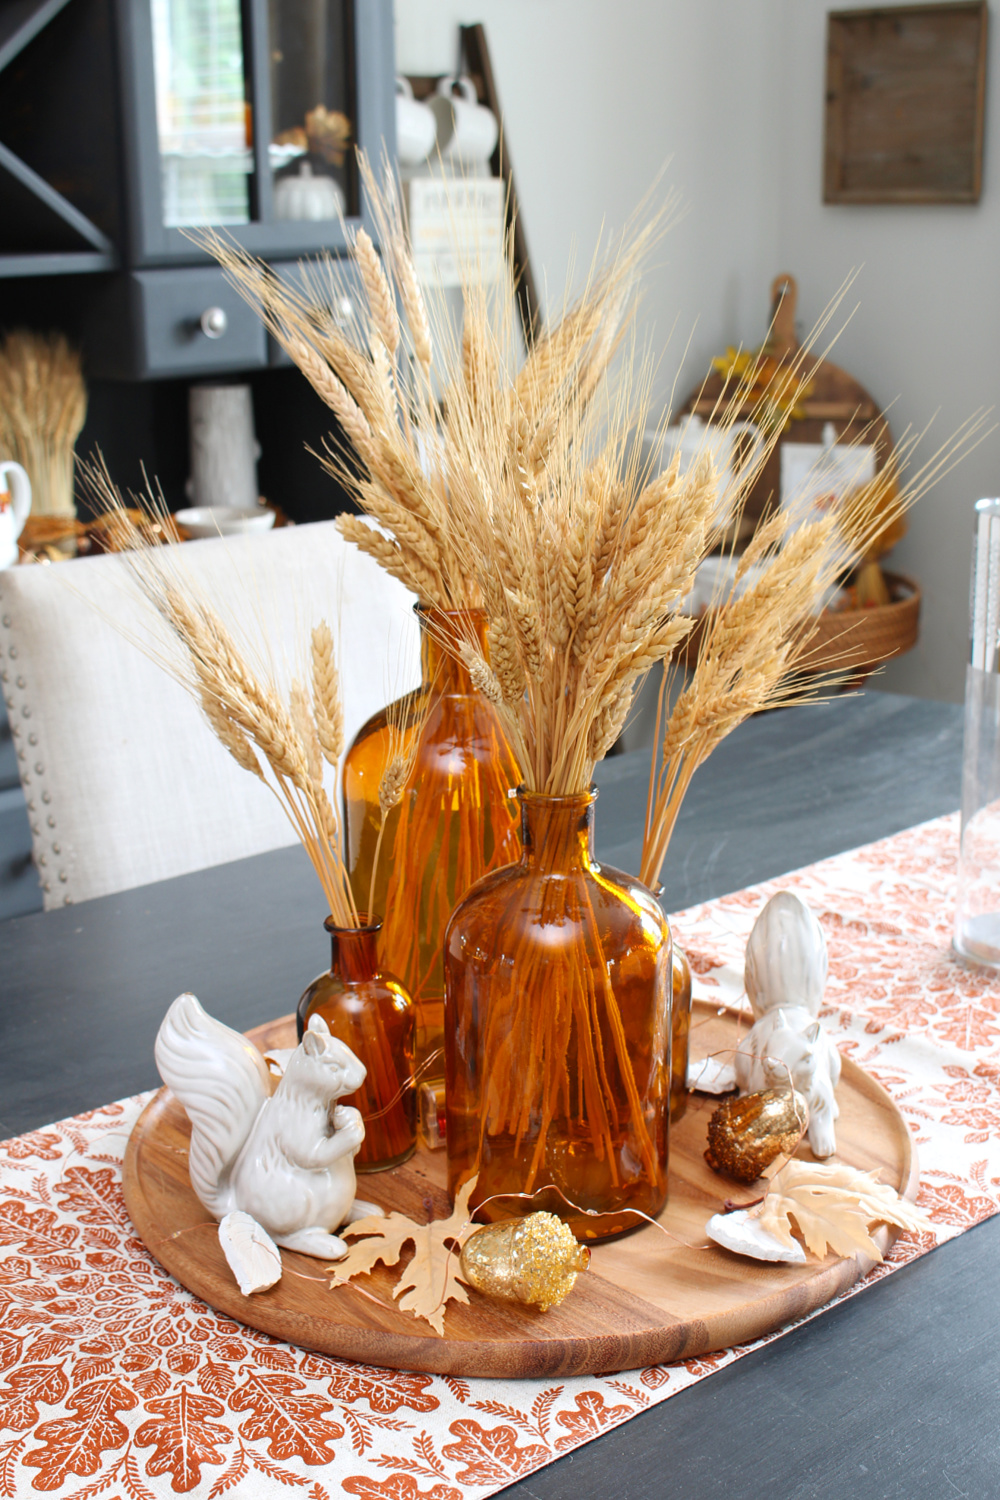 Fall centerpiece with amber glass bottles, wheat, and twinkle lights.